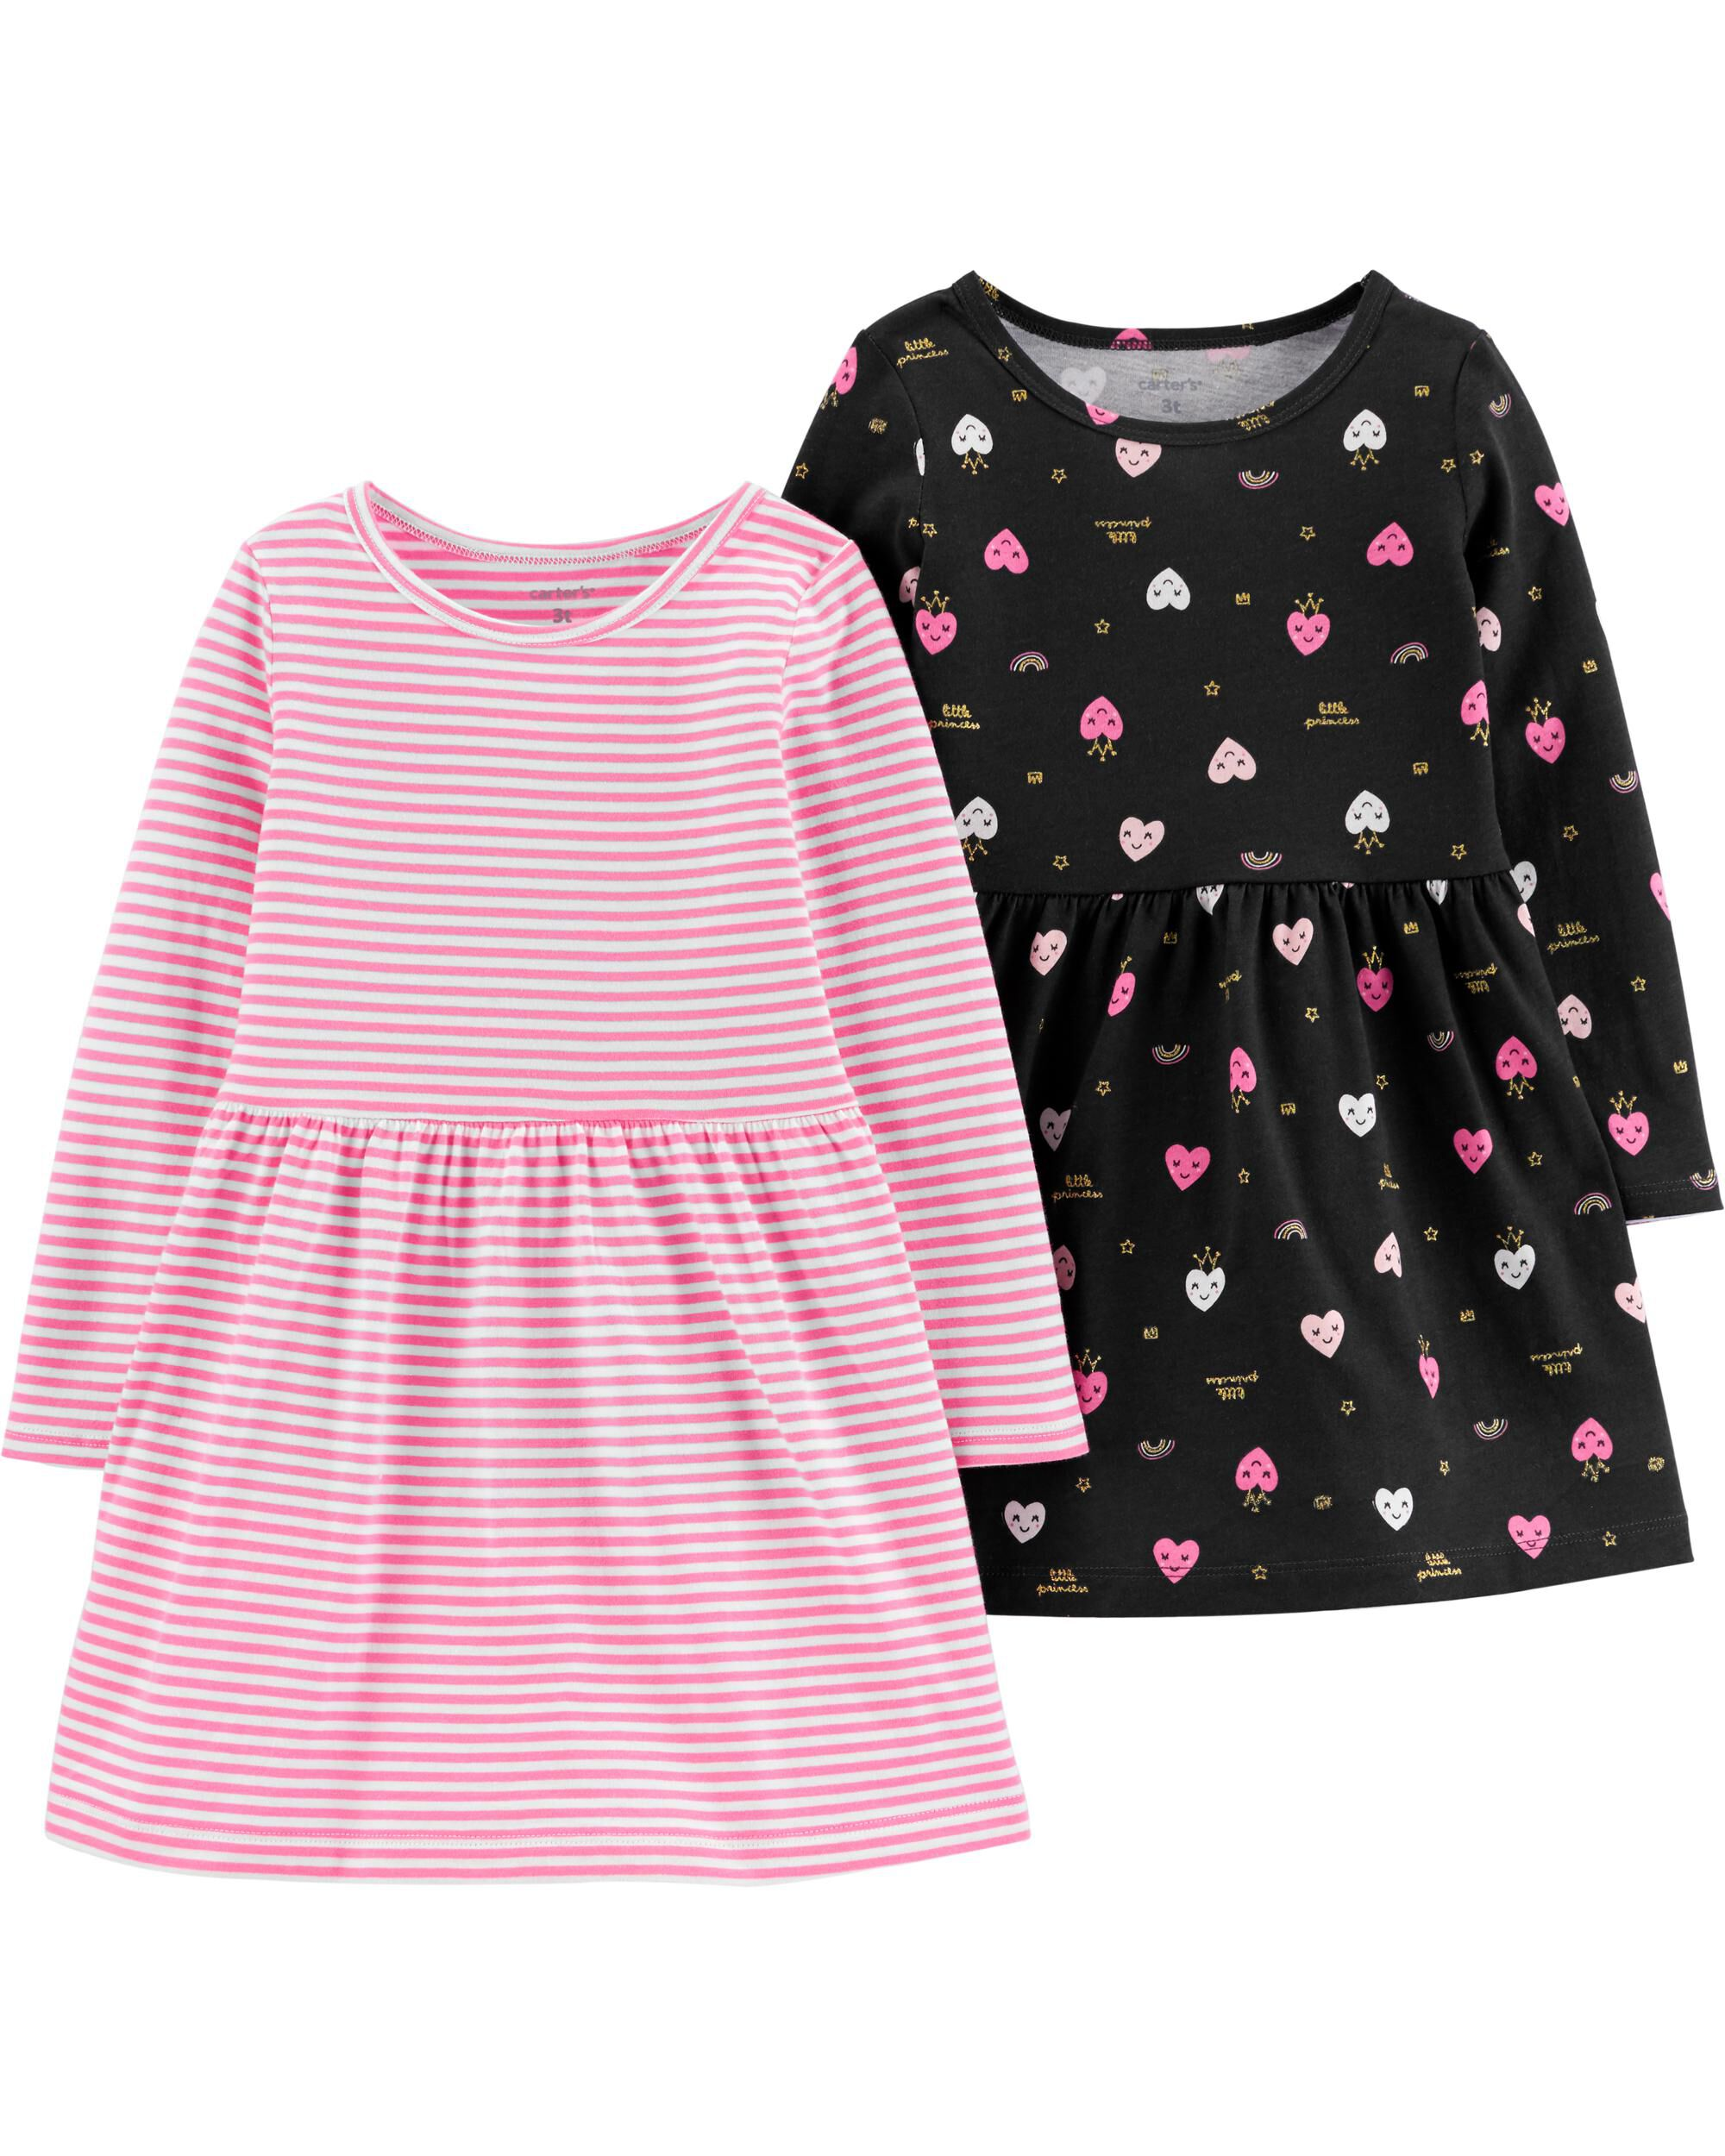 *CLEARANCE* 2-Pack Hearts & Striped Jersey Dresses